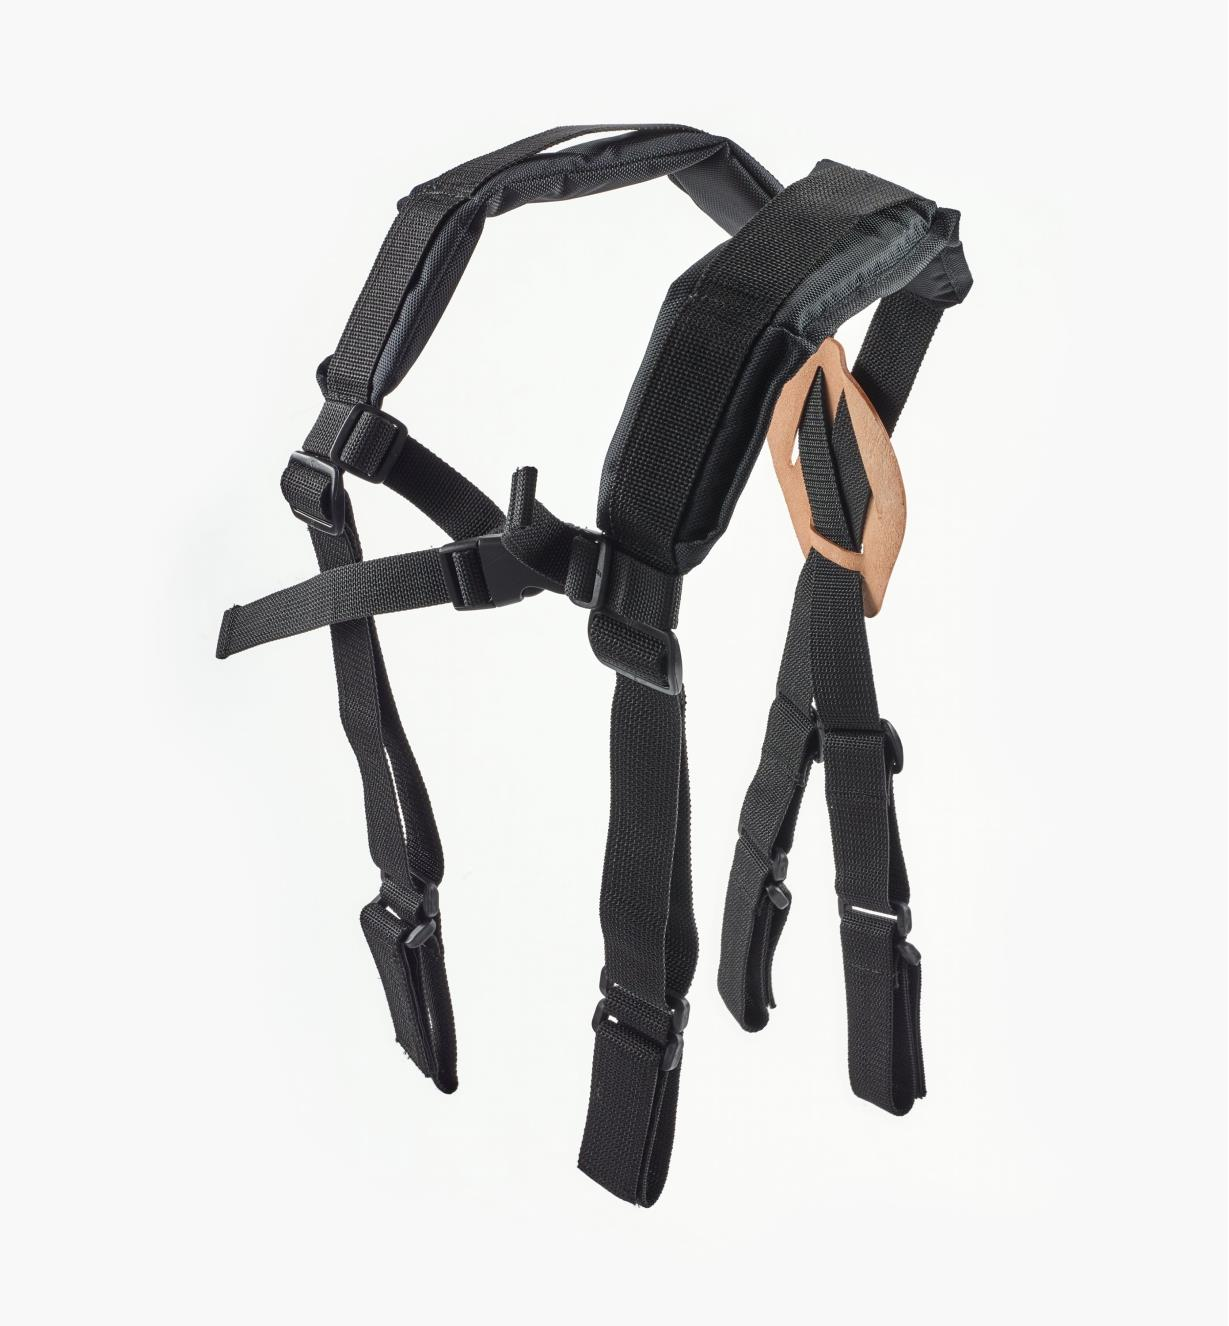 68K3605 - Heavy-Duty Padded Braces